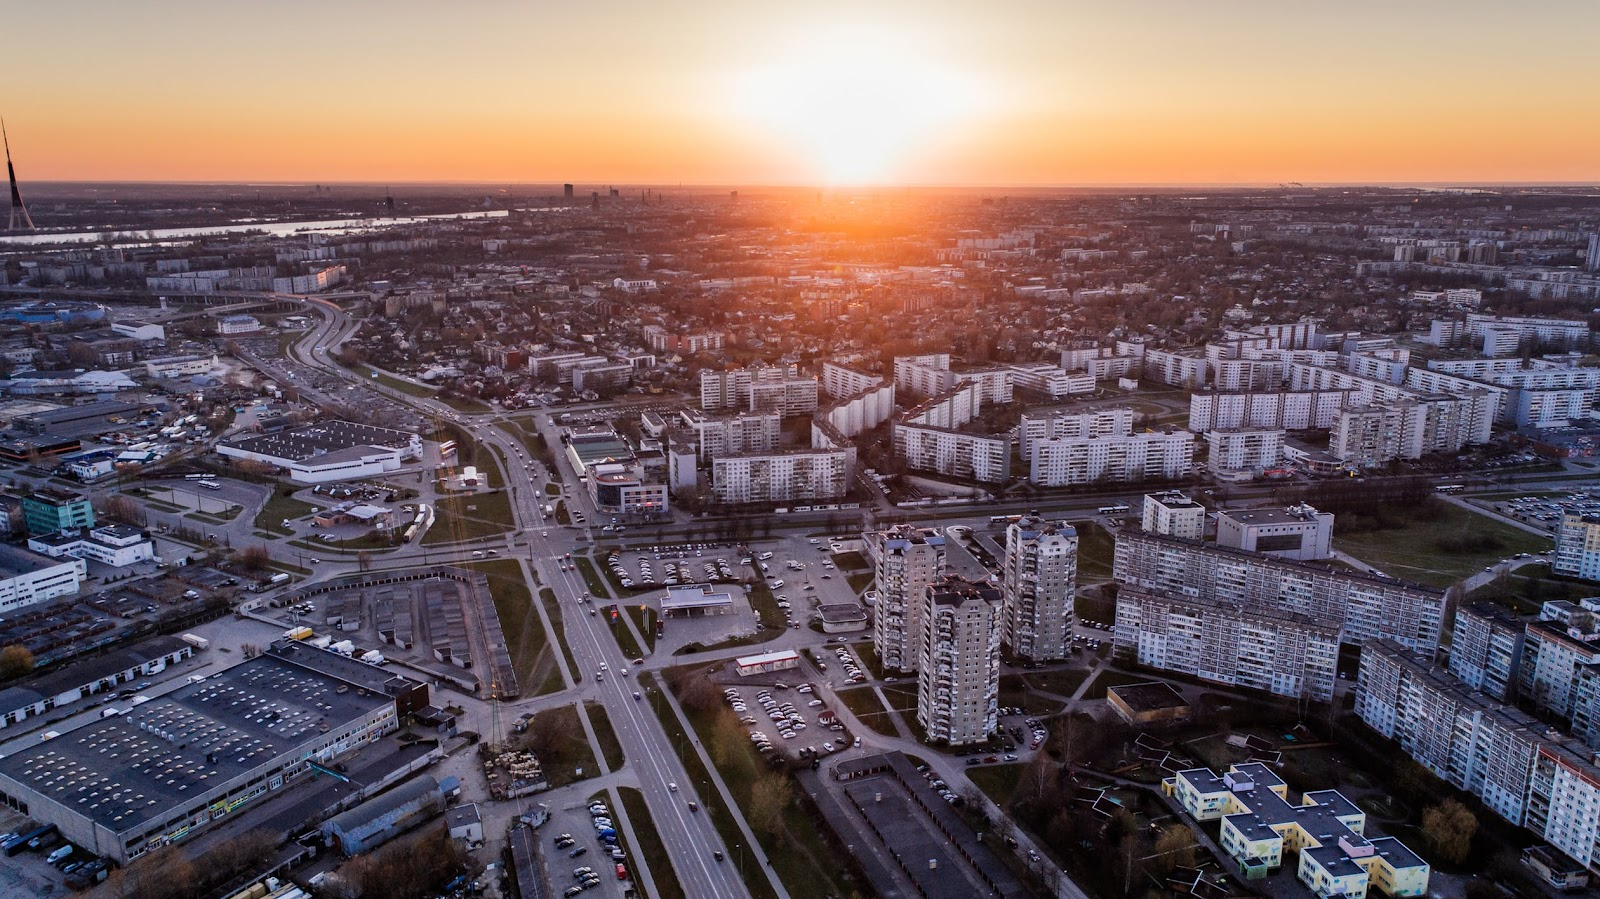 aerial-photo-of-high-rise-buildings-during-sunrise-681333/selling your property